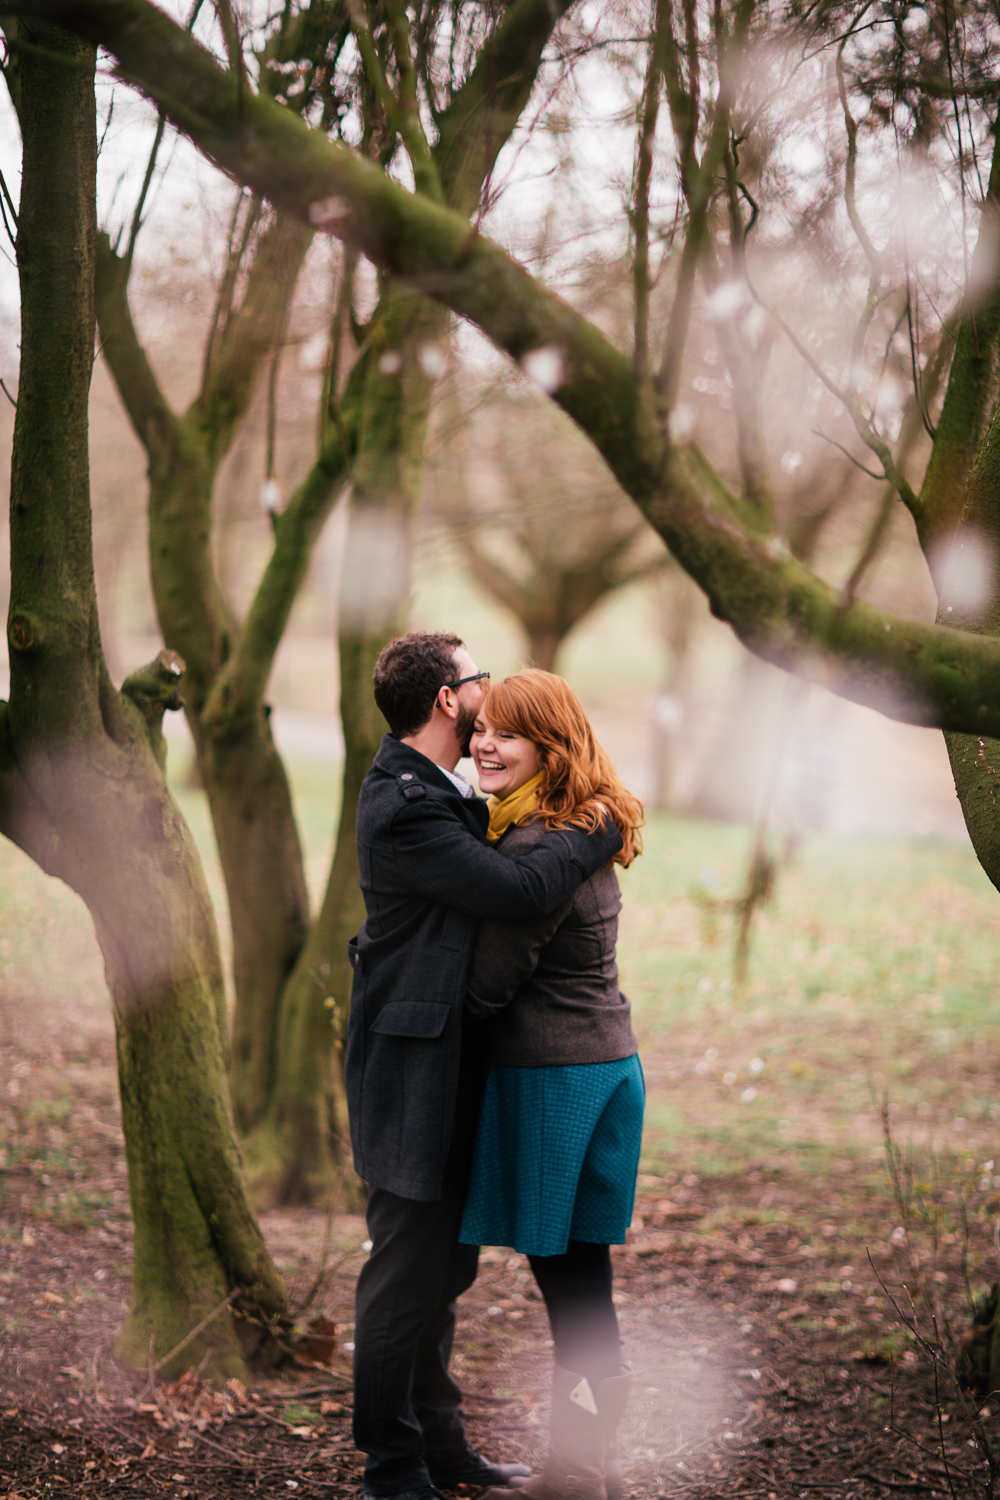 Alexandra Palace Engagement Shoot Creative Artistic Photography London (38 of 42).jpg